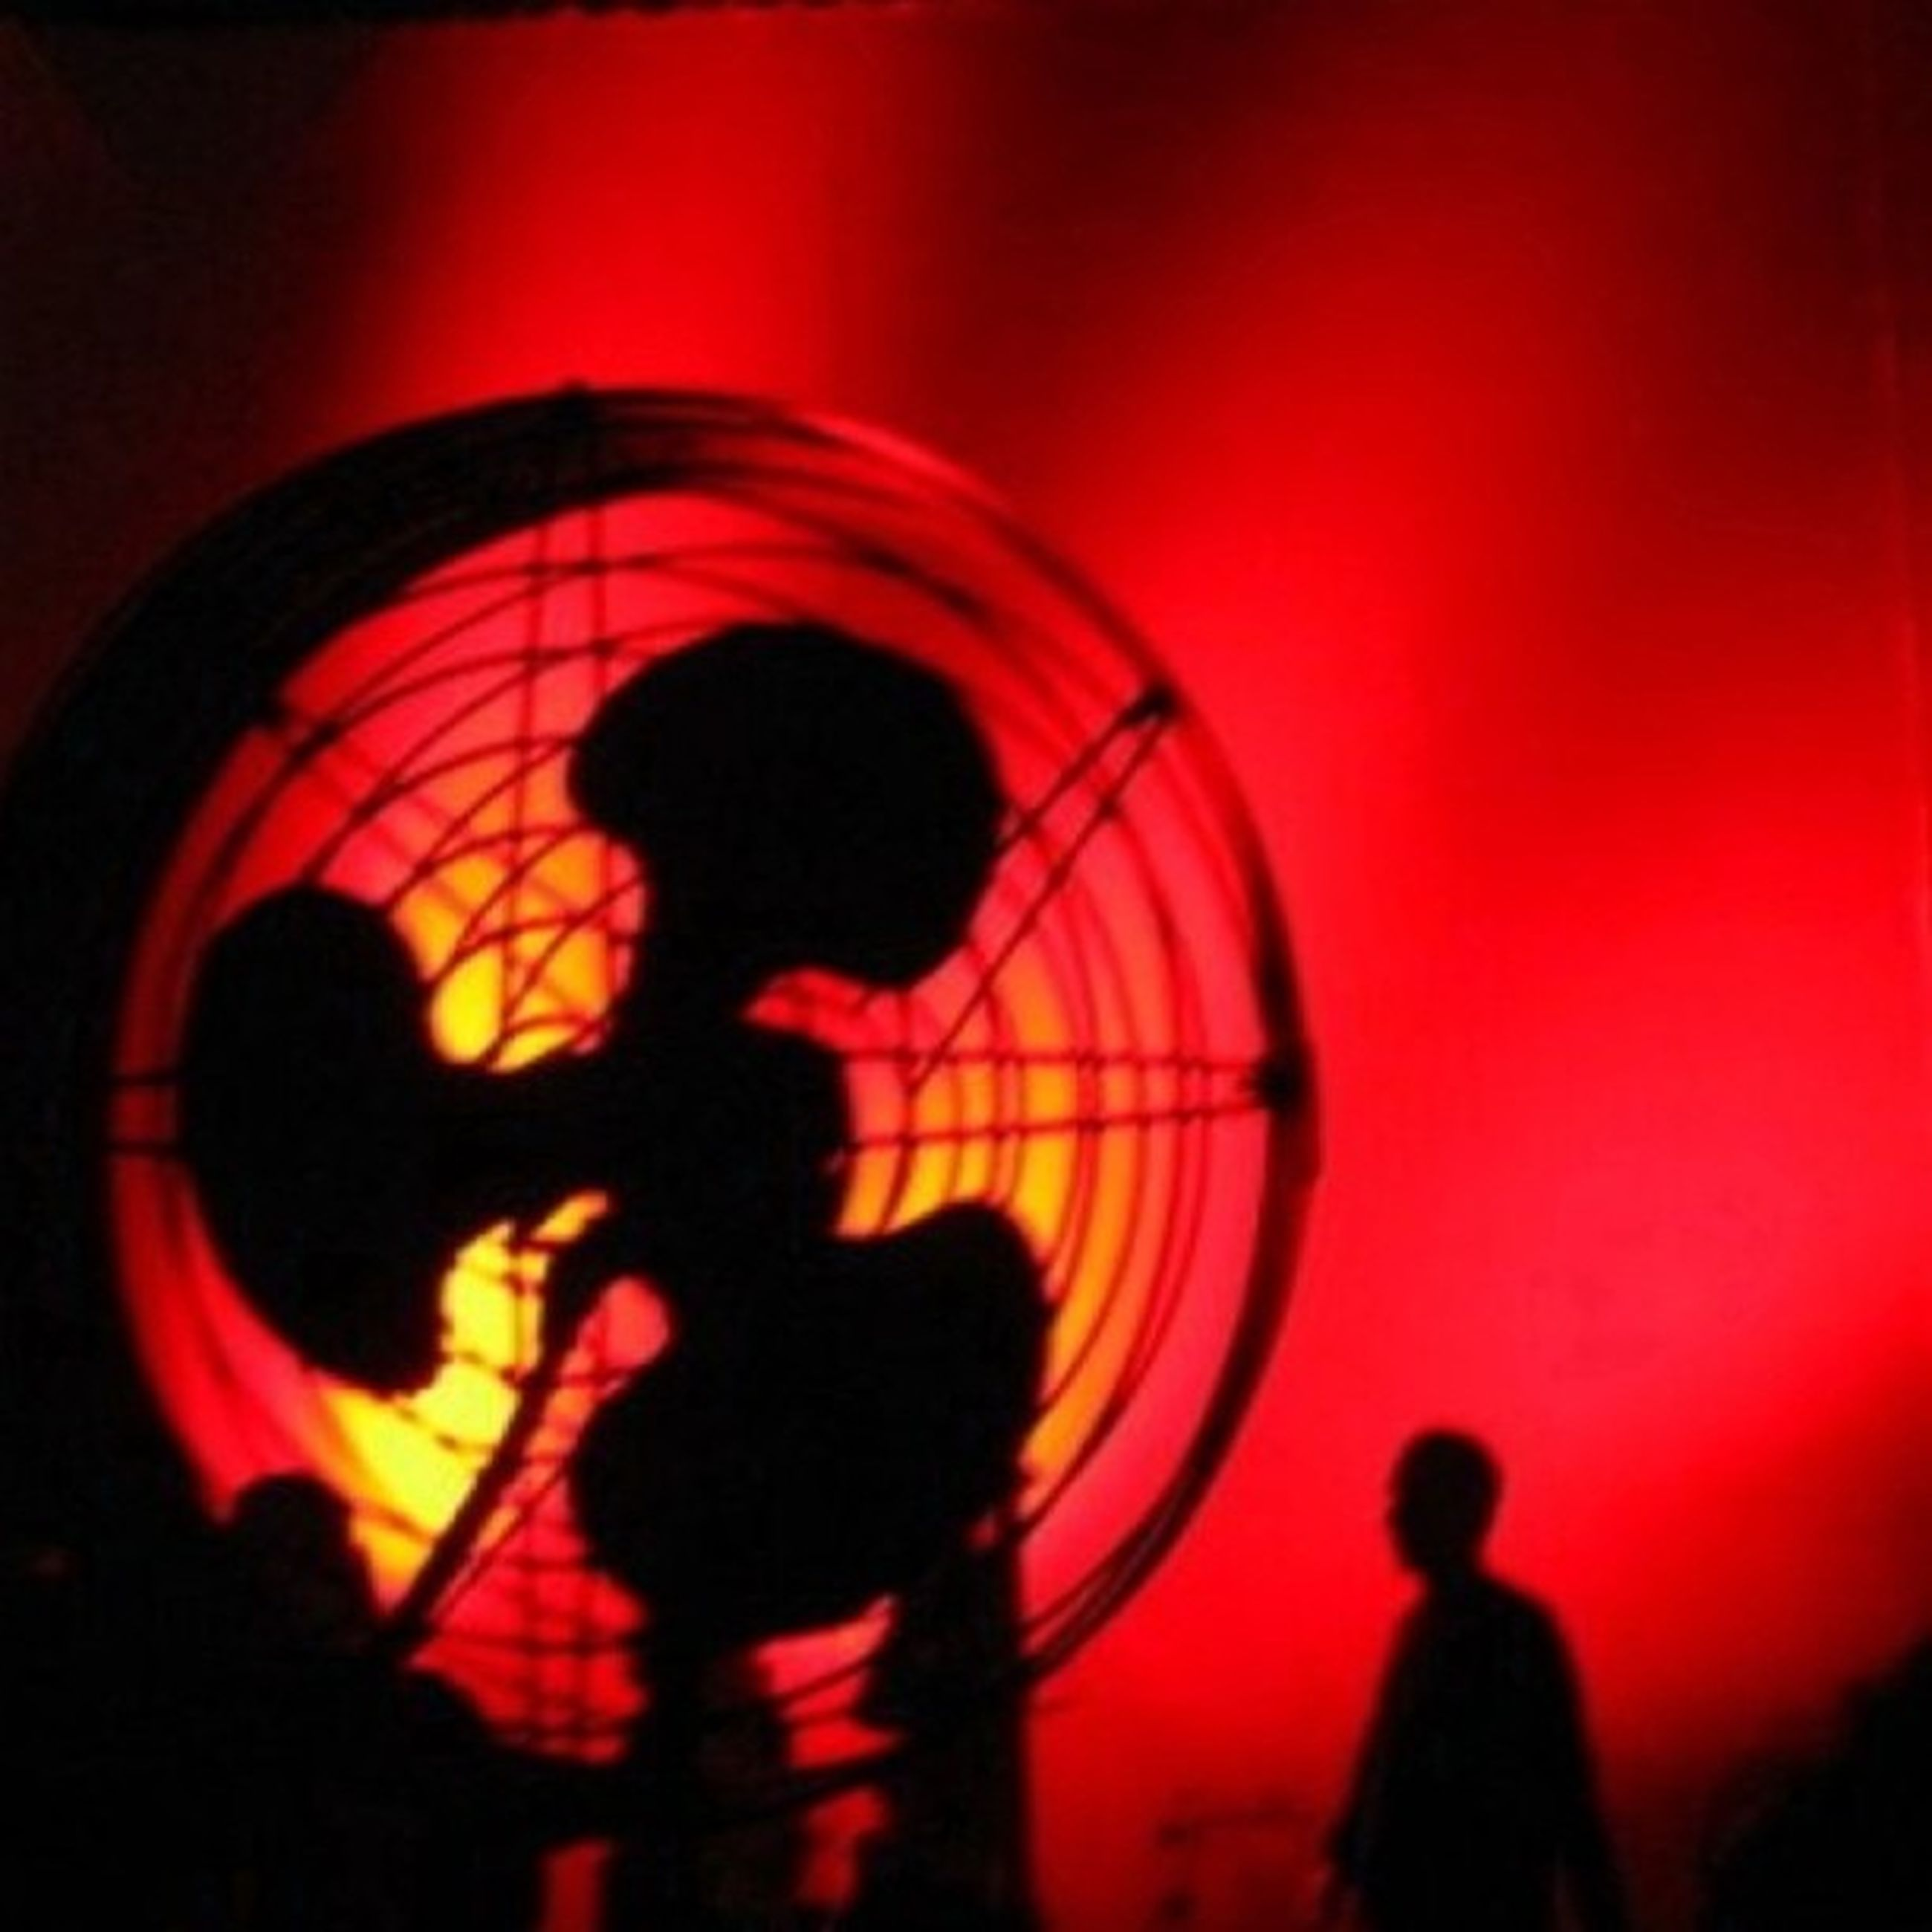 leisure activity, lifestyles, men, arts culture and entertainment, silhouette, illuminated, person, red, enjoyment, fun, standing, orange color, circle, night, rear view, sunset, unrecognizable person, playing